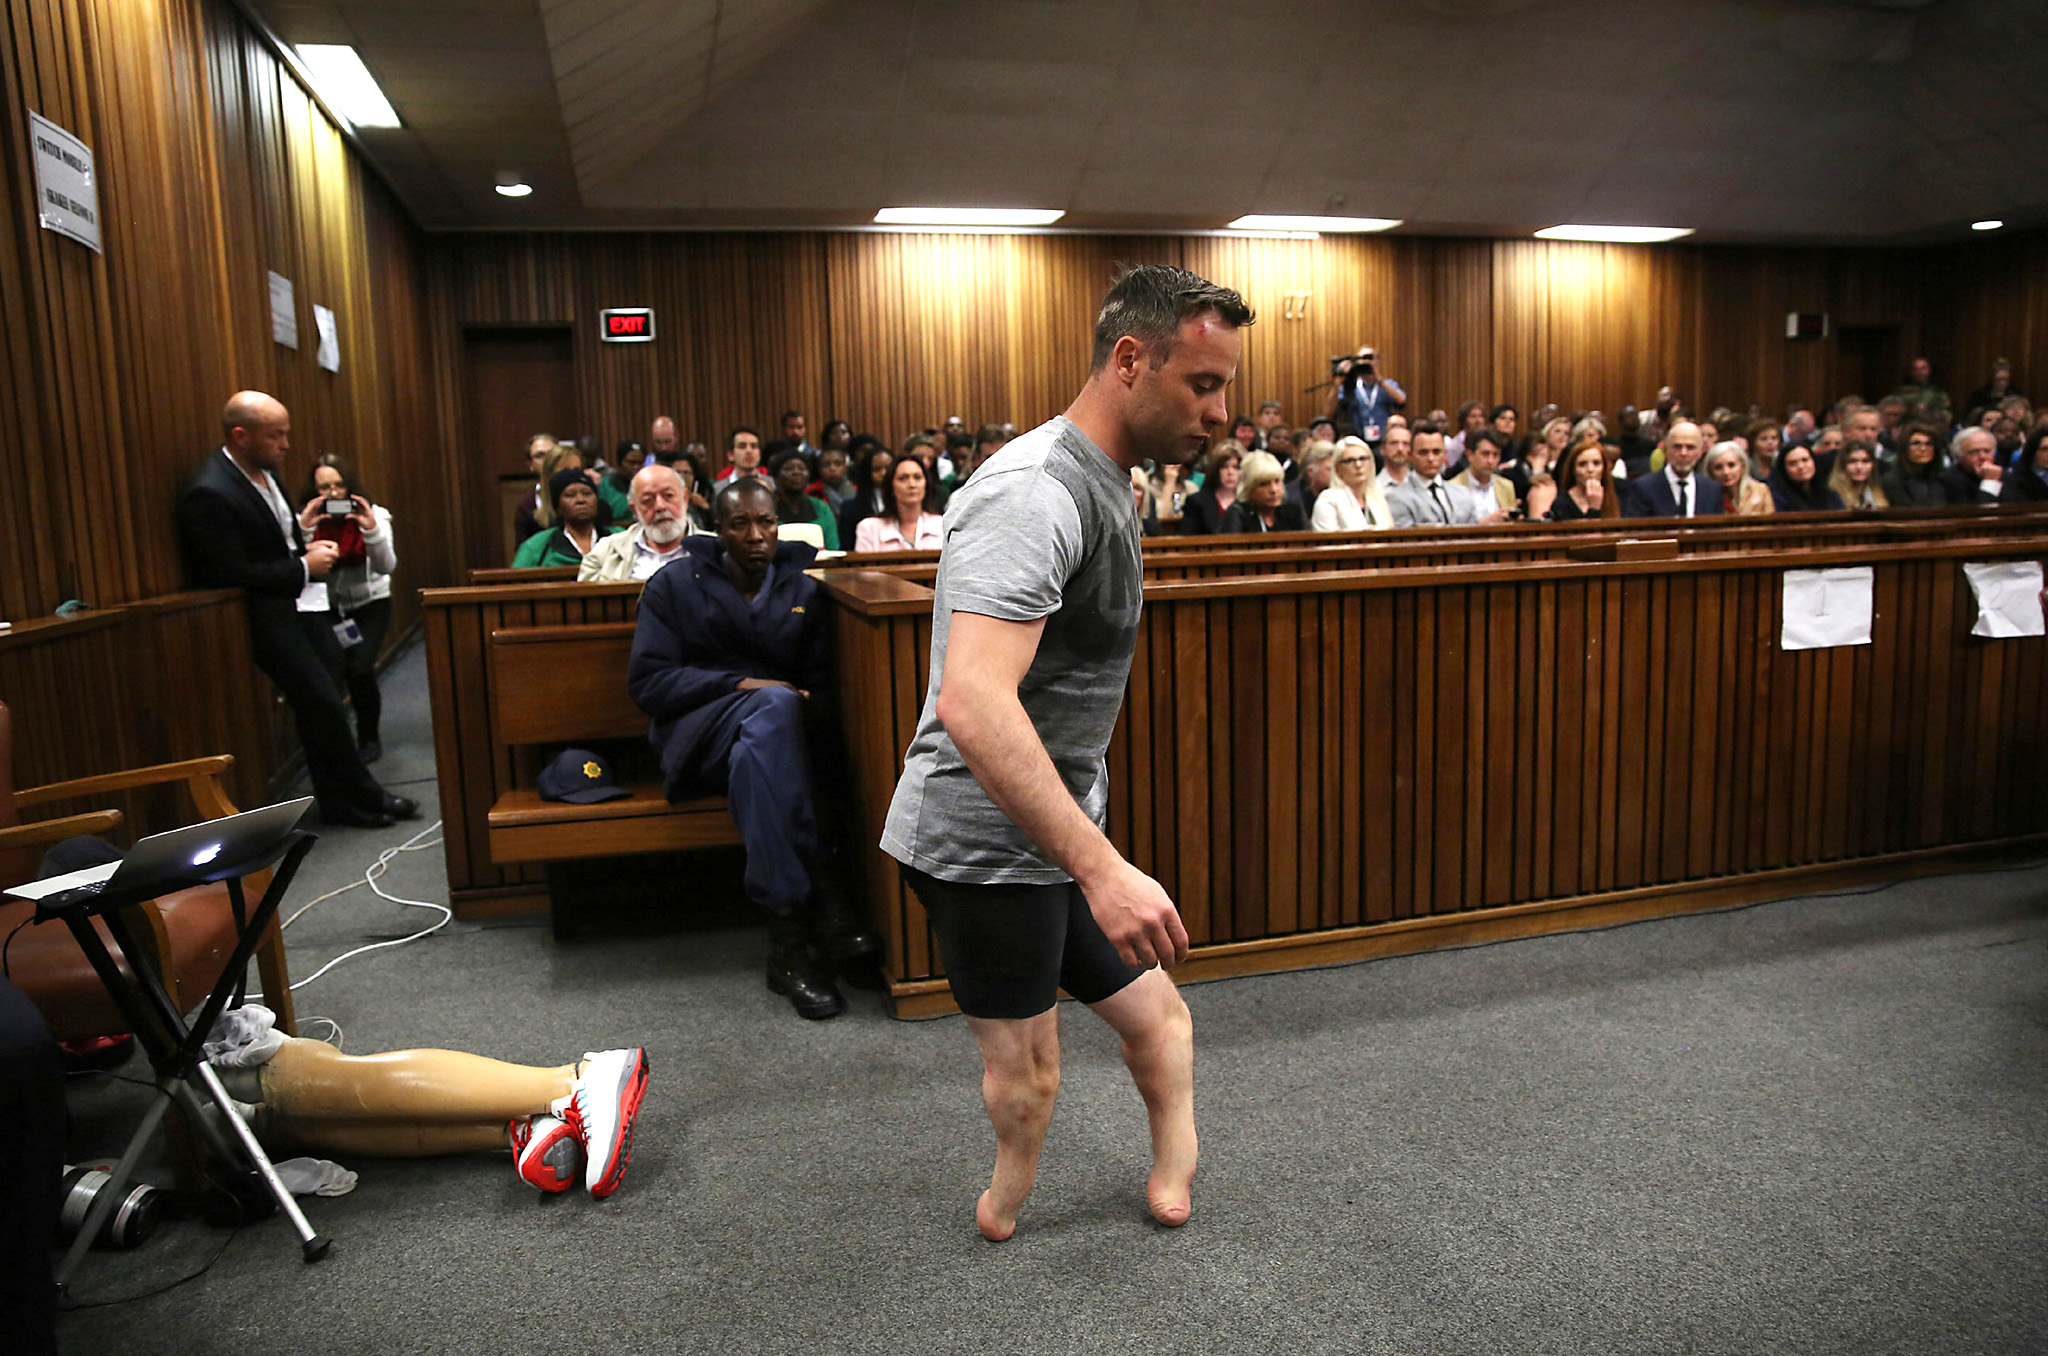 "ATTENTION EDITORS - REUTERS PICTURE HIGHLIGHTParalympic gold medalist Oscar Pistorius walks across the courtroom without his prosthetic legs during the third day of the resentencing hearing for the 2013 murder of his girlfriend Reeva Steenkamp, at Pretoria High Court, South Africa June 15, 2016. REUTERS/Siphiwe SibekoREUTERS NEWS PICTURES HAS NOW MADE IT EASIER TO FIND THE BEST PHOTOS FROM THE MOST IMPORTANT STORIES AND TOP STANDALONES EACH DAY. Search for ""TPX"" in the IPTC Supplemental Category field or ""IMAGES OF THE DAY"" in the Caption field and you will find a selection of 80-100 of our daily Top Pictures.REUTERS NEWS PICTURES. TEMPLATE OUT"